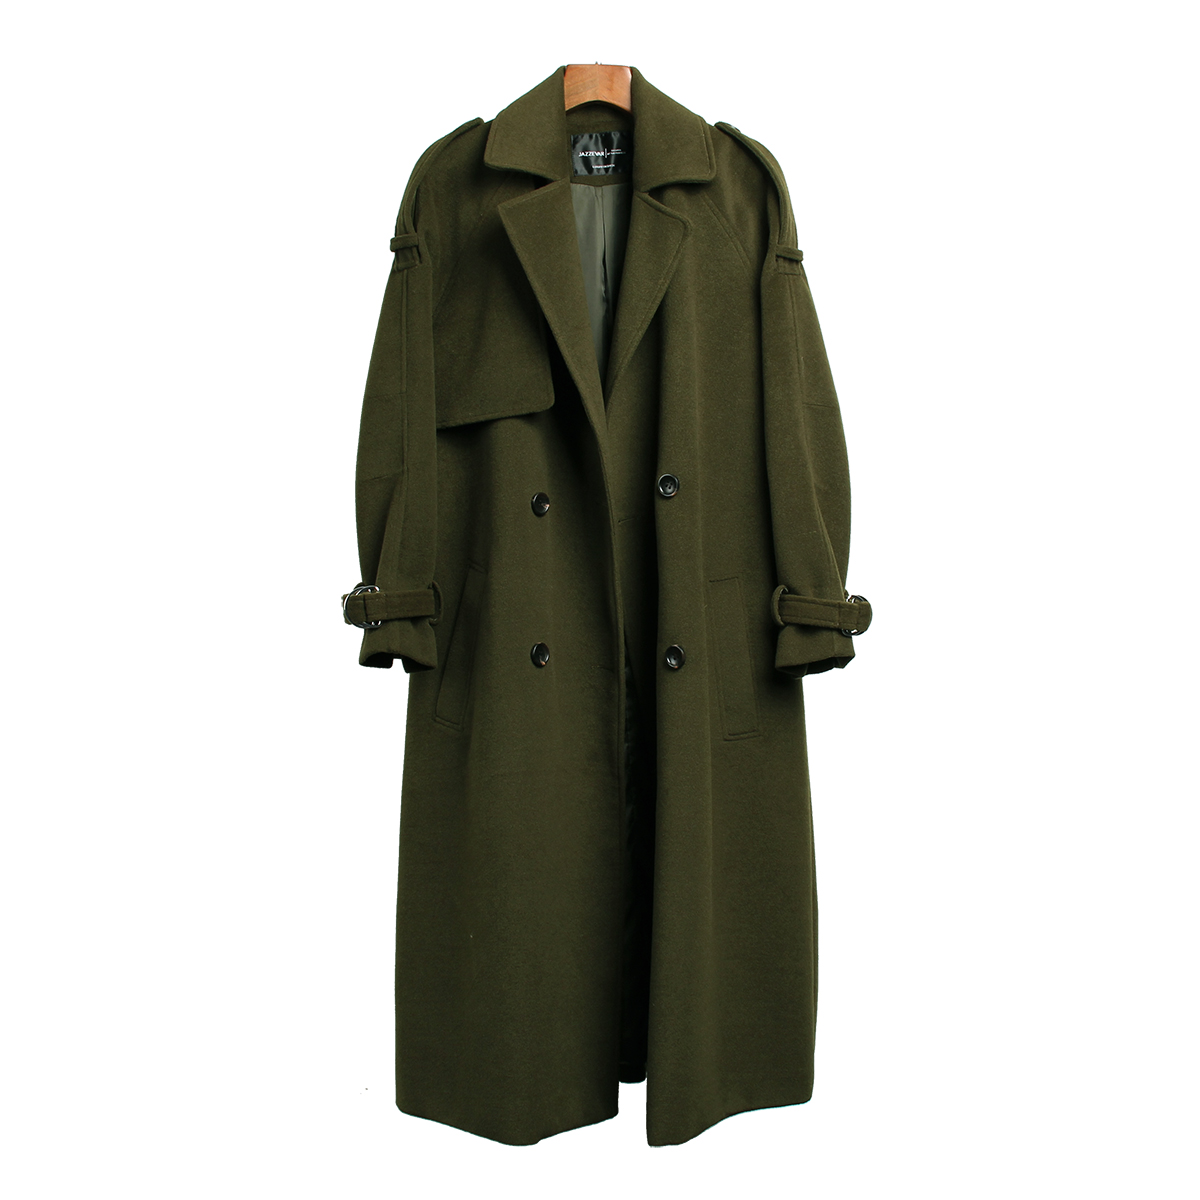 JAZZEVAR 19 Autumn winter New Women's Casual wool blend trench coat oversize Double Breasted X-Long coat with belt 860504 5